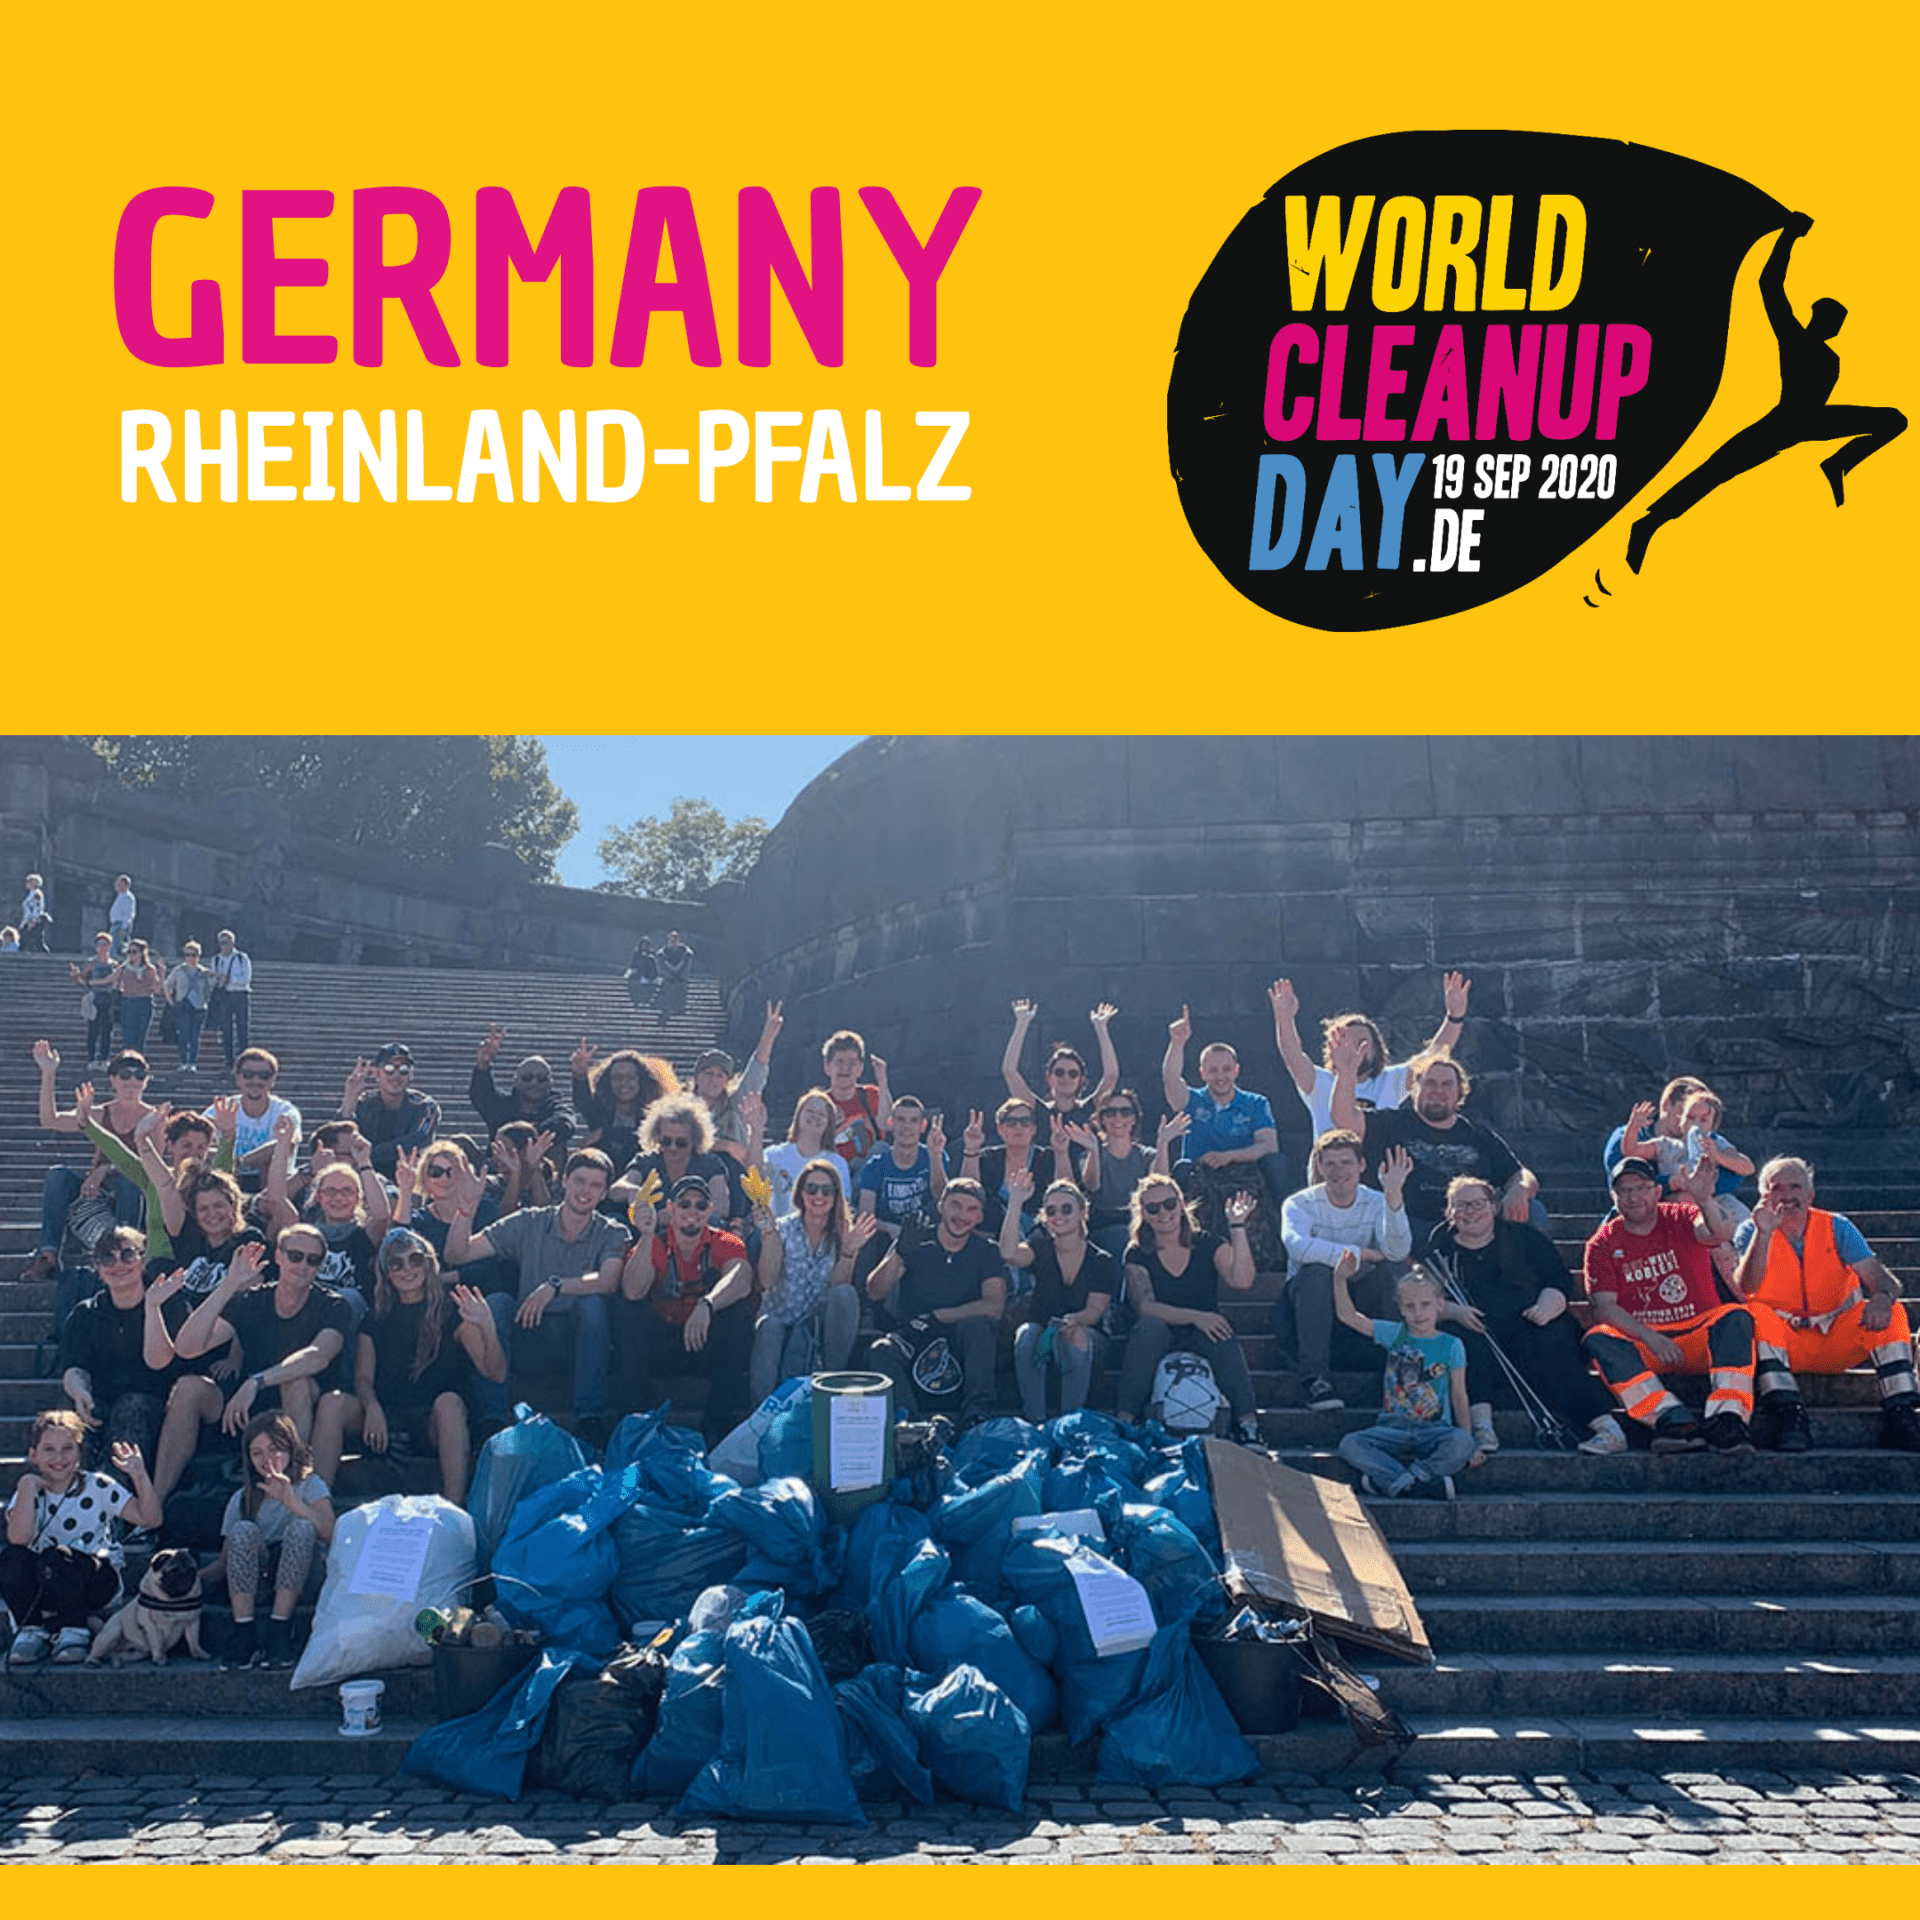 World Clean Up Day 2020 - Koffi Company (Rheinland-Pfalz)